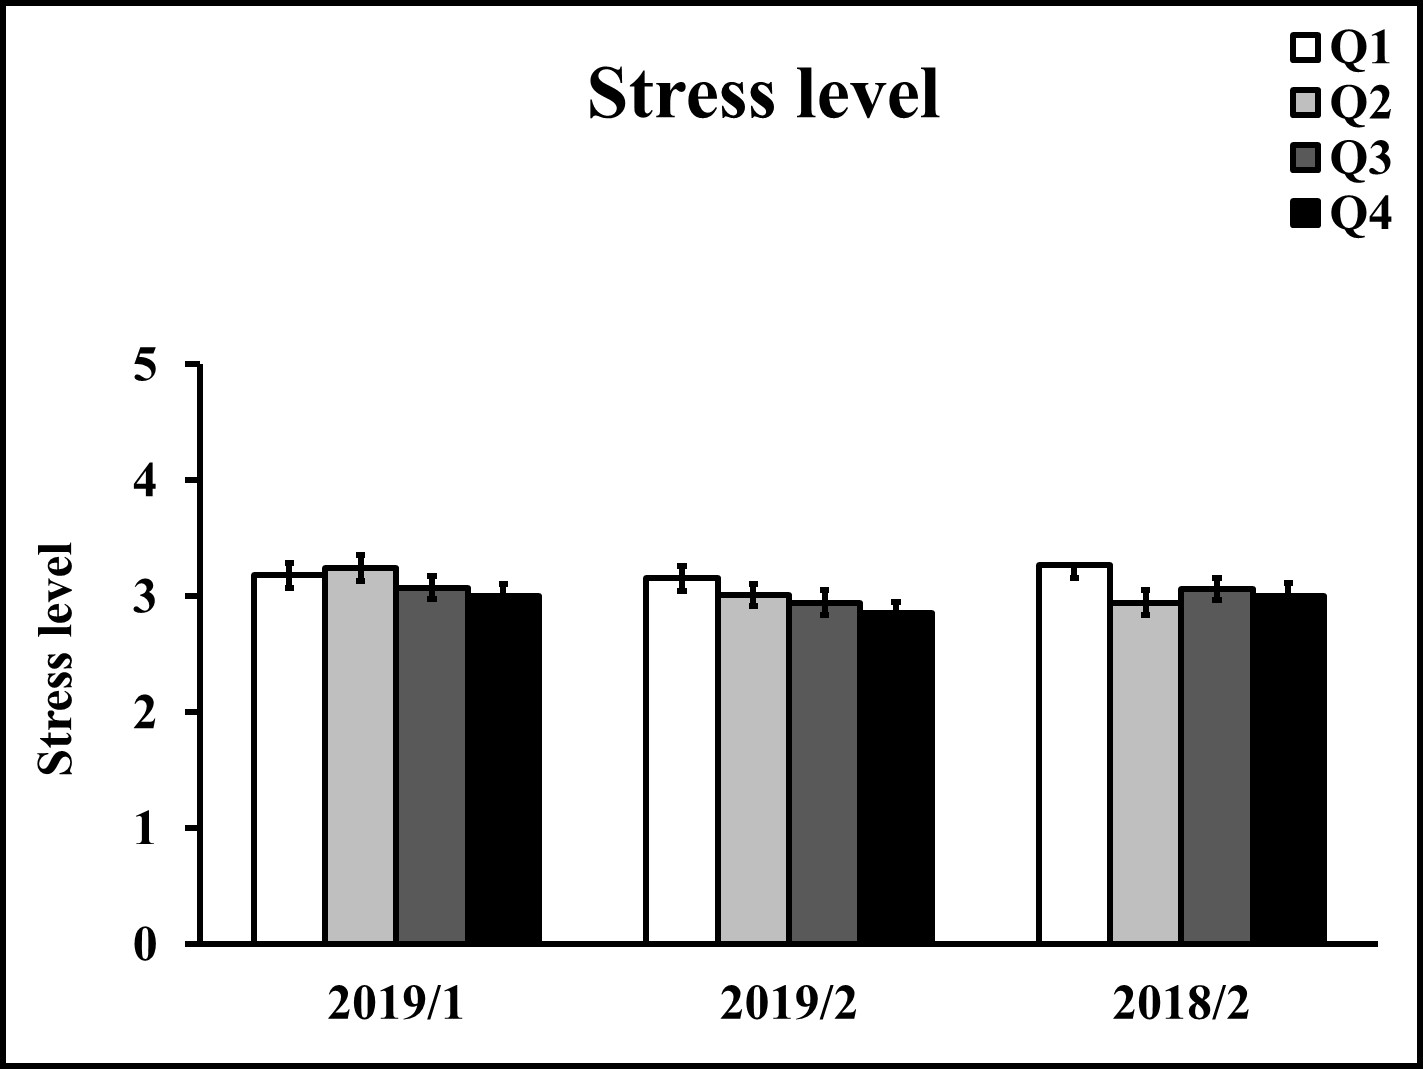 2019/1 and 2019/2 represent the class of 2019 in the 1st and 2nd preclinical years, respectively. 2018/2 represents the class of 2018 in the 2nd preclinical year. Data are shown as mean (standard error of the mean, S.E.M.), *p<0.05, **p<0.01, ***p<0.001 compared between groups